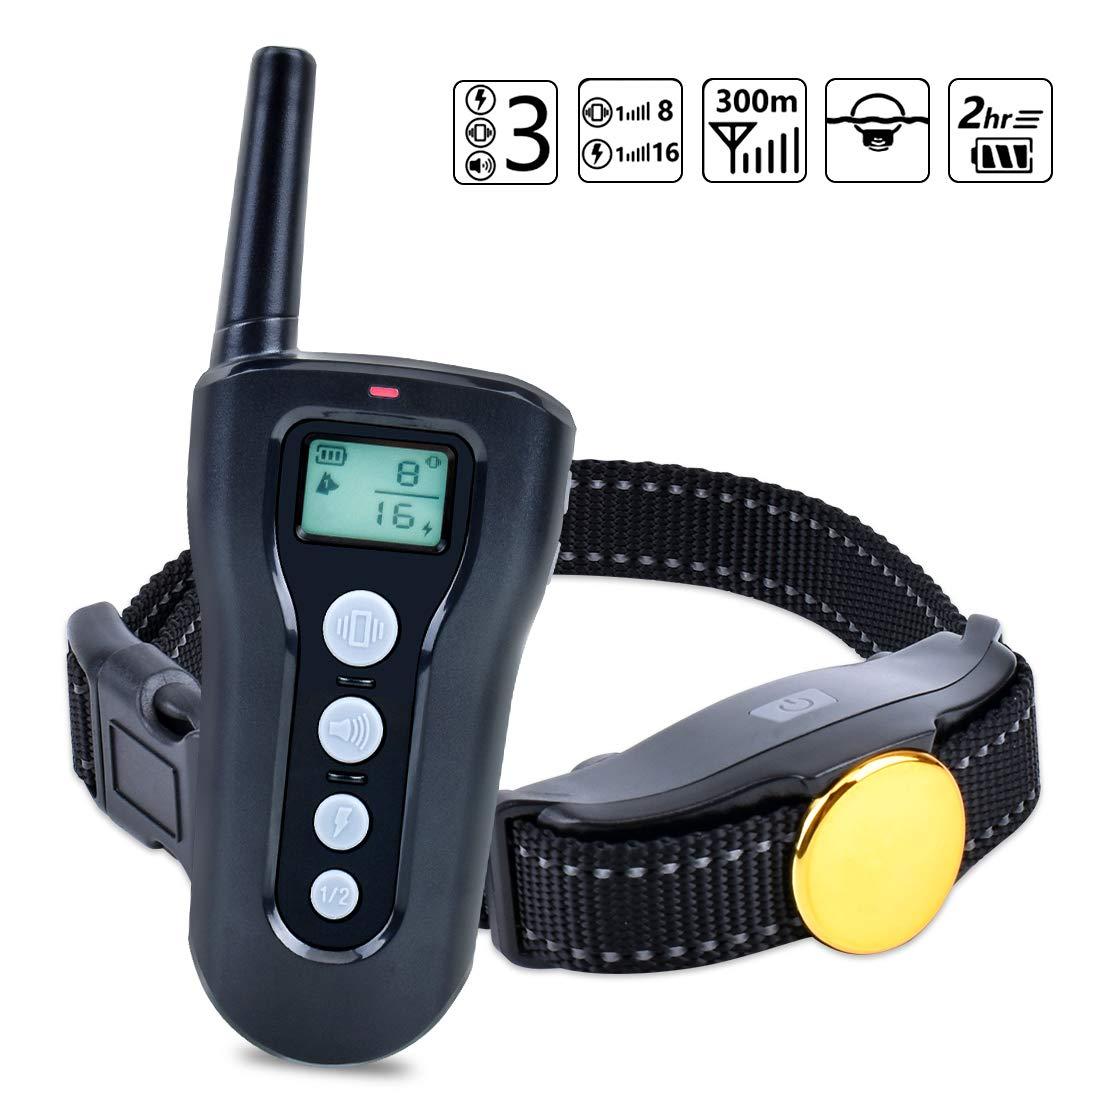 CutePet Remote Dog Training Collar - 330 Yard Range - Rechargeable & Waterproof Dog Bark Shock Collar with Beep/Vibration/Shock Mode for Small Medium and Large Dogs